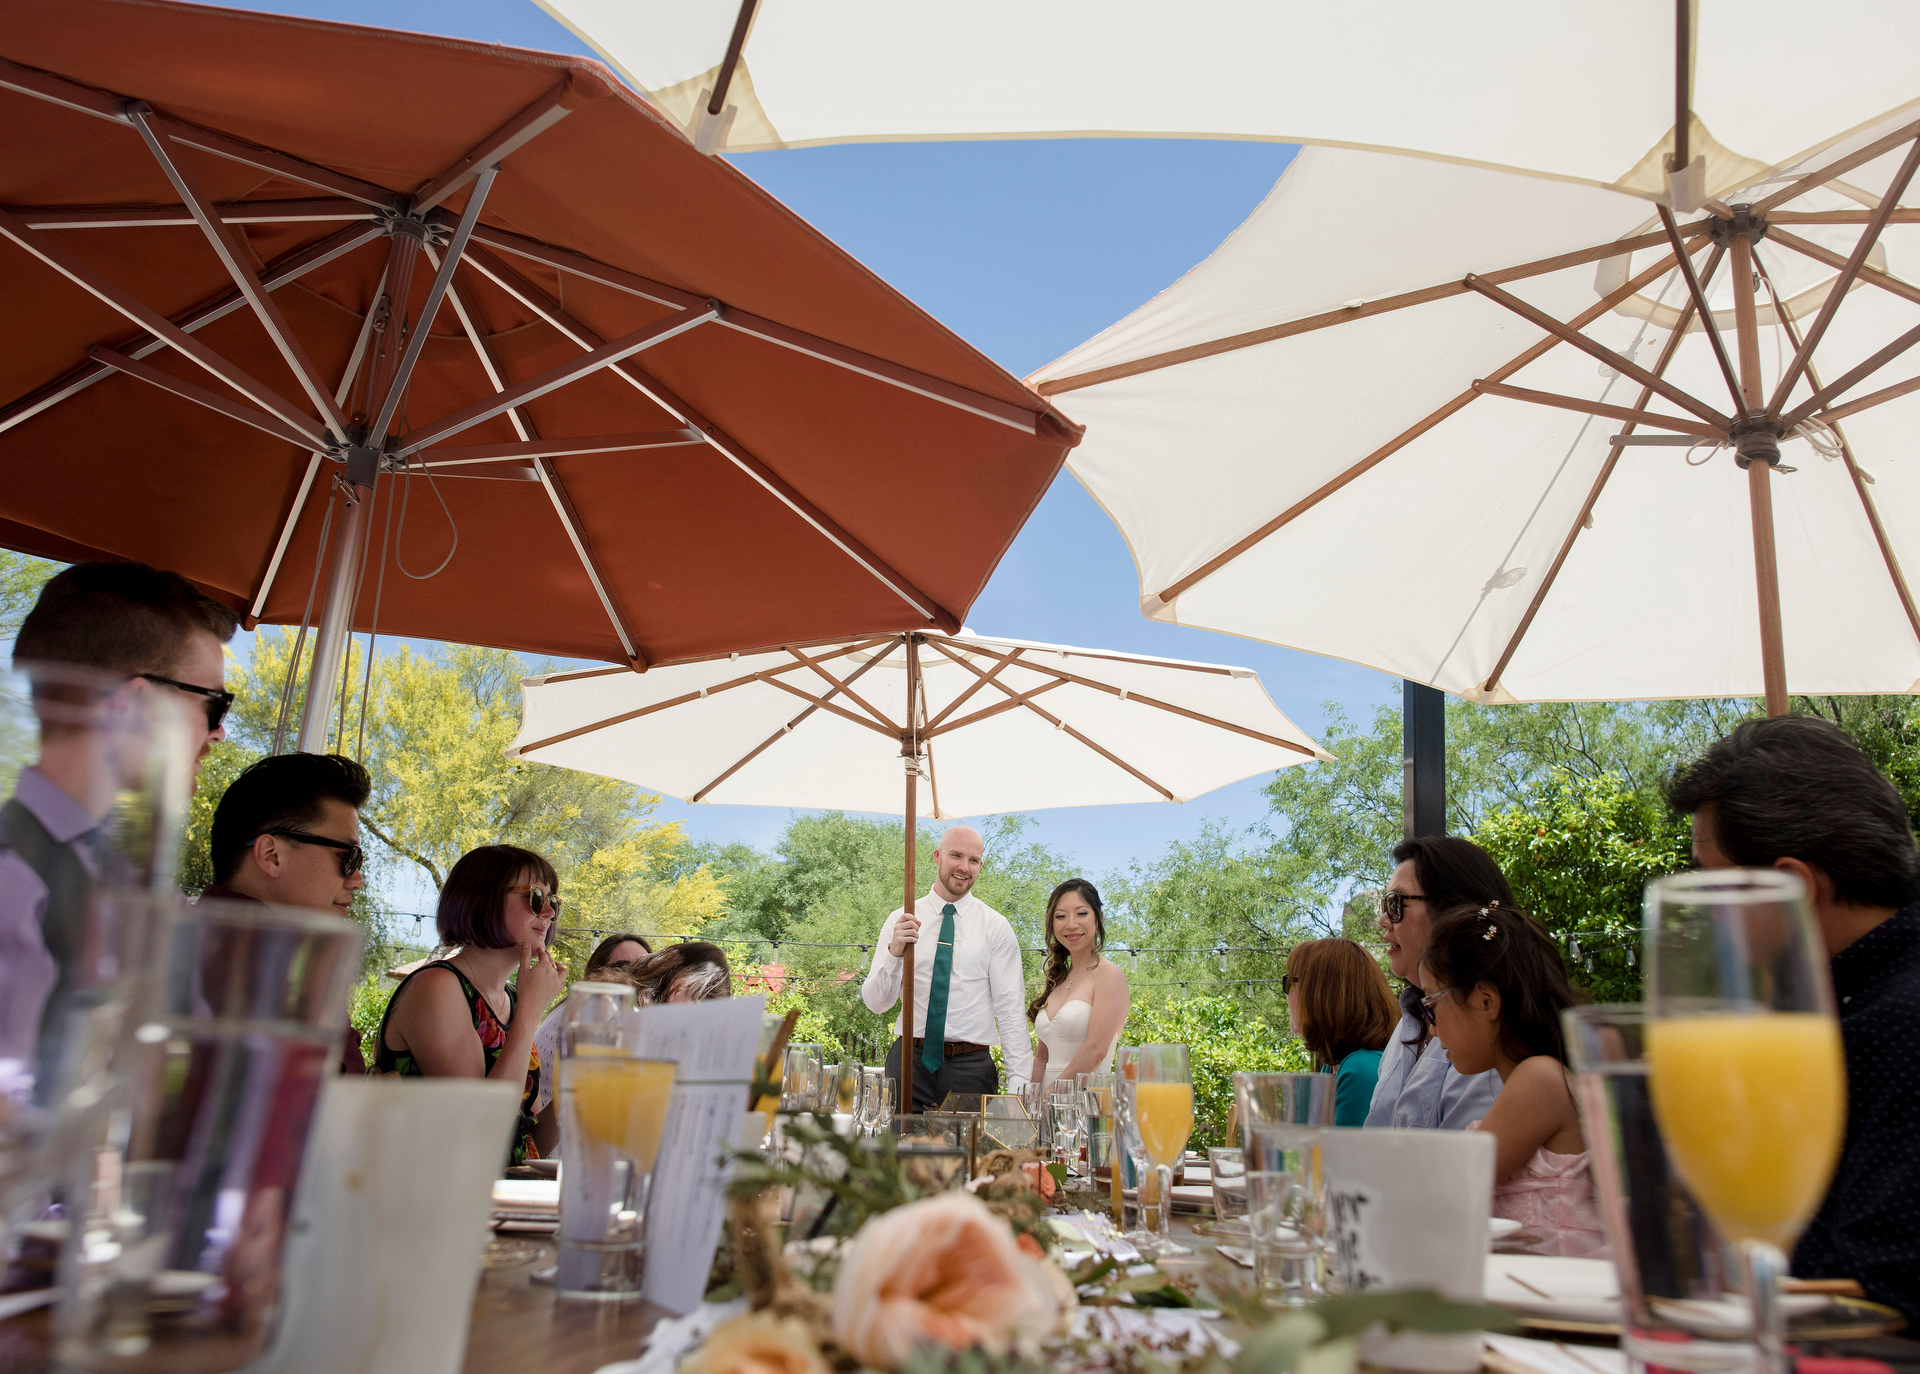 Scottsdale Elopement Reception Venue Photo | The guests are seated beneath umbrellas for the outdoor brunch reception